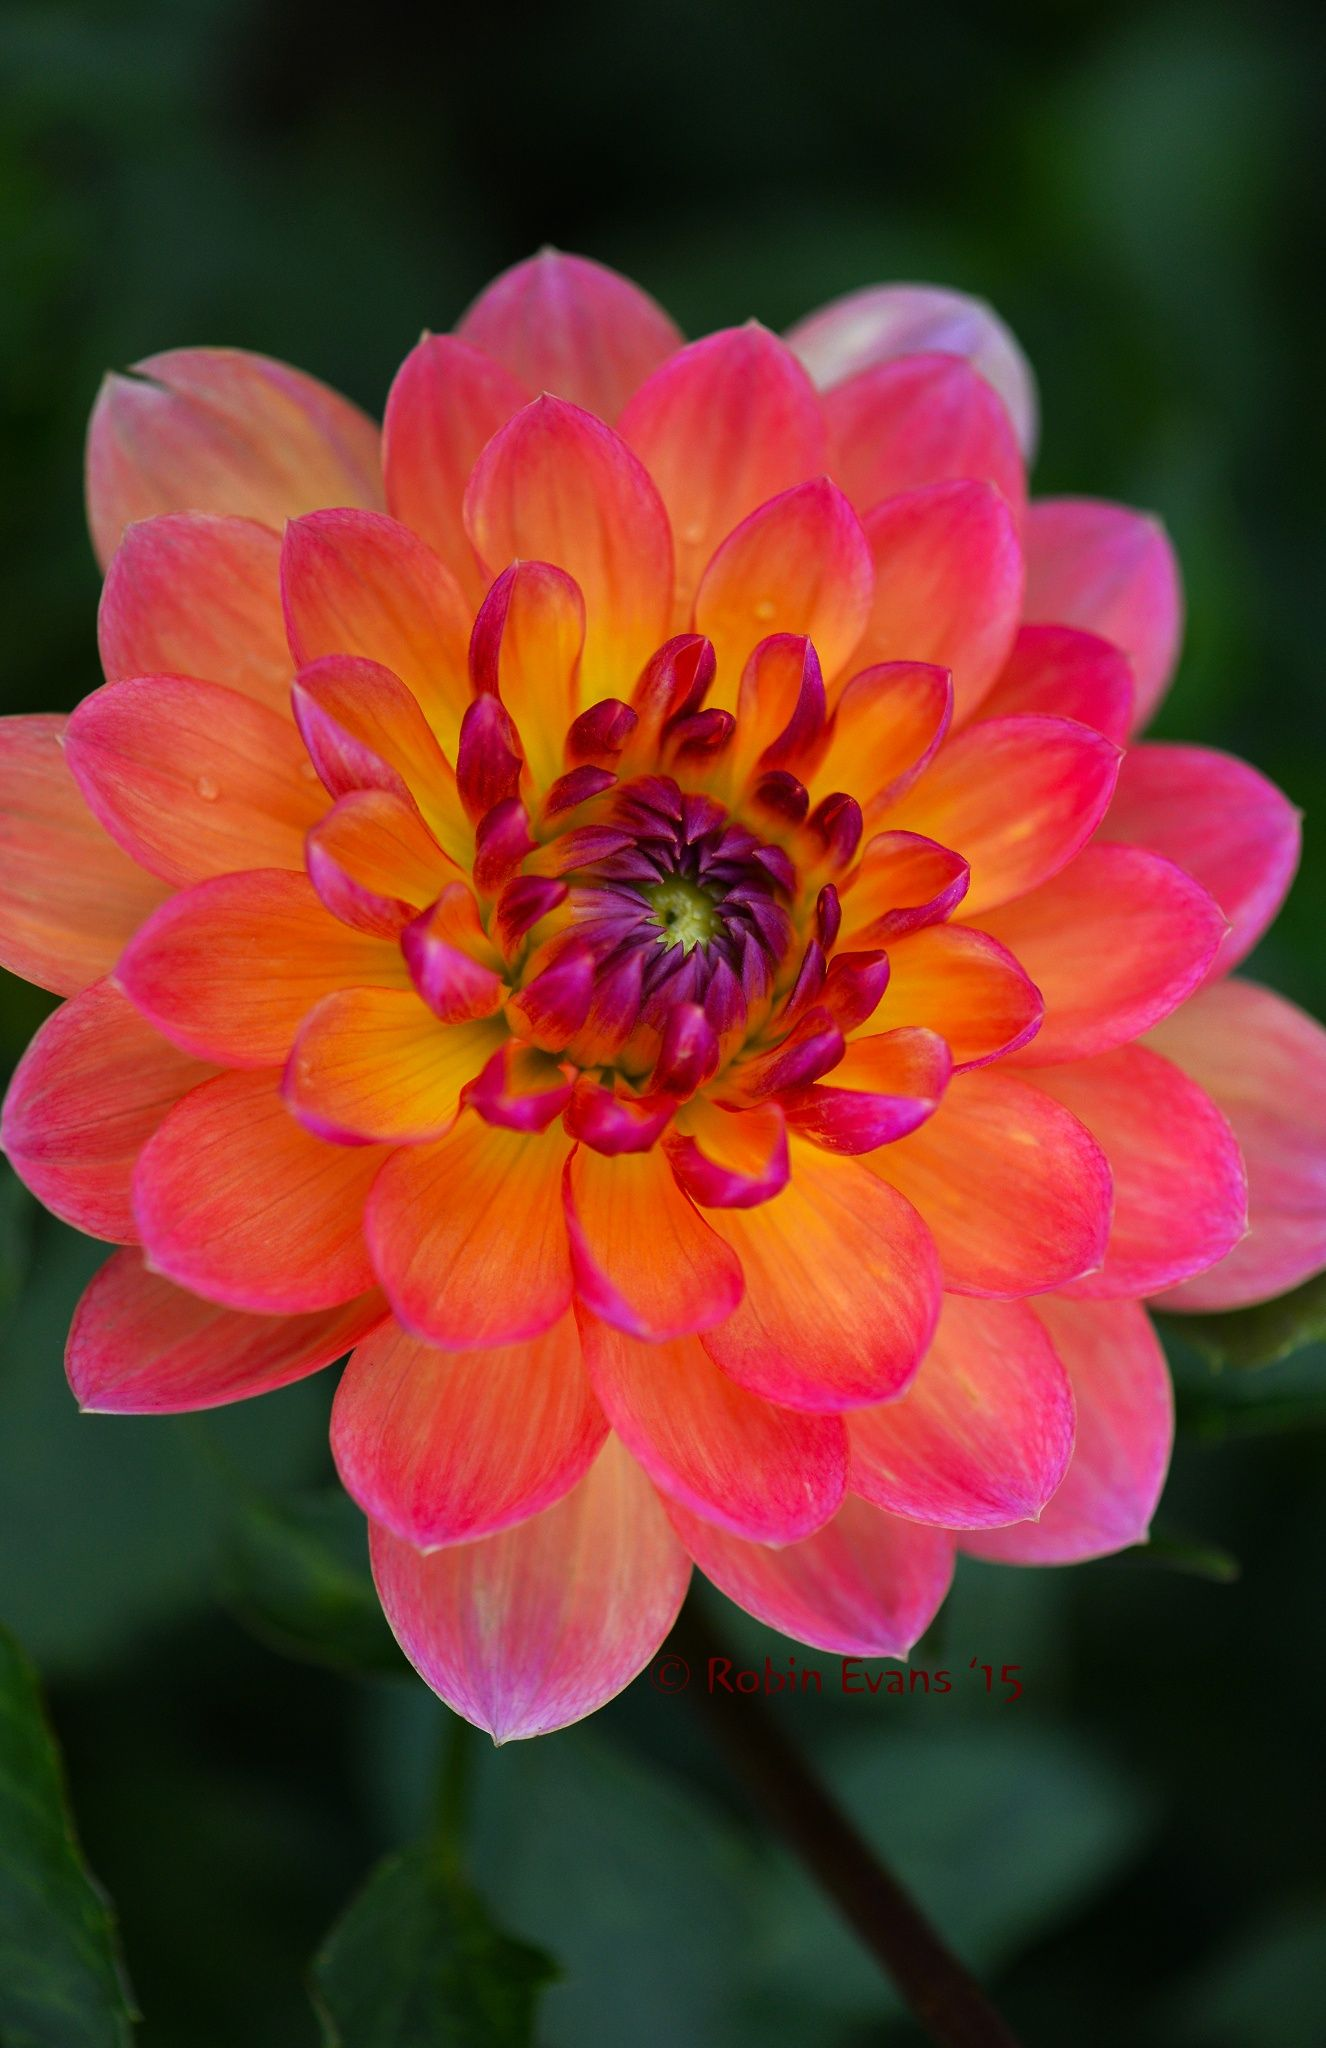 Fire and rain pam howden waterlily dahlia is the widely considered flower izmirmasajfo